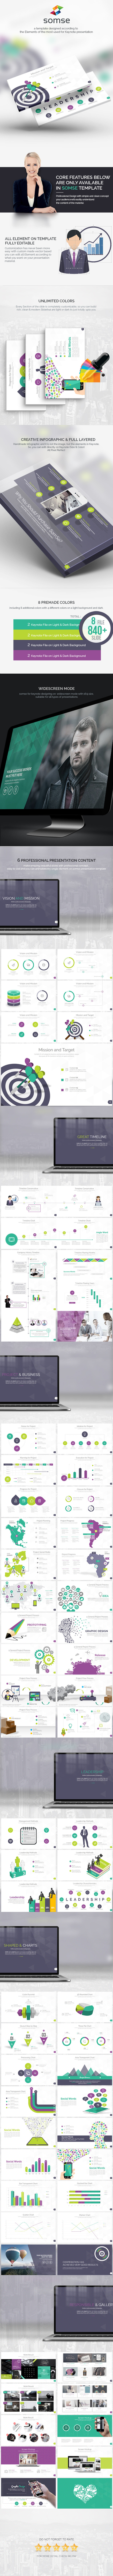 Somse - All in One Keynote Template - Business Keynote Templates